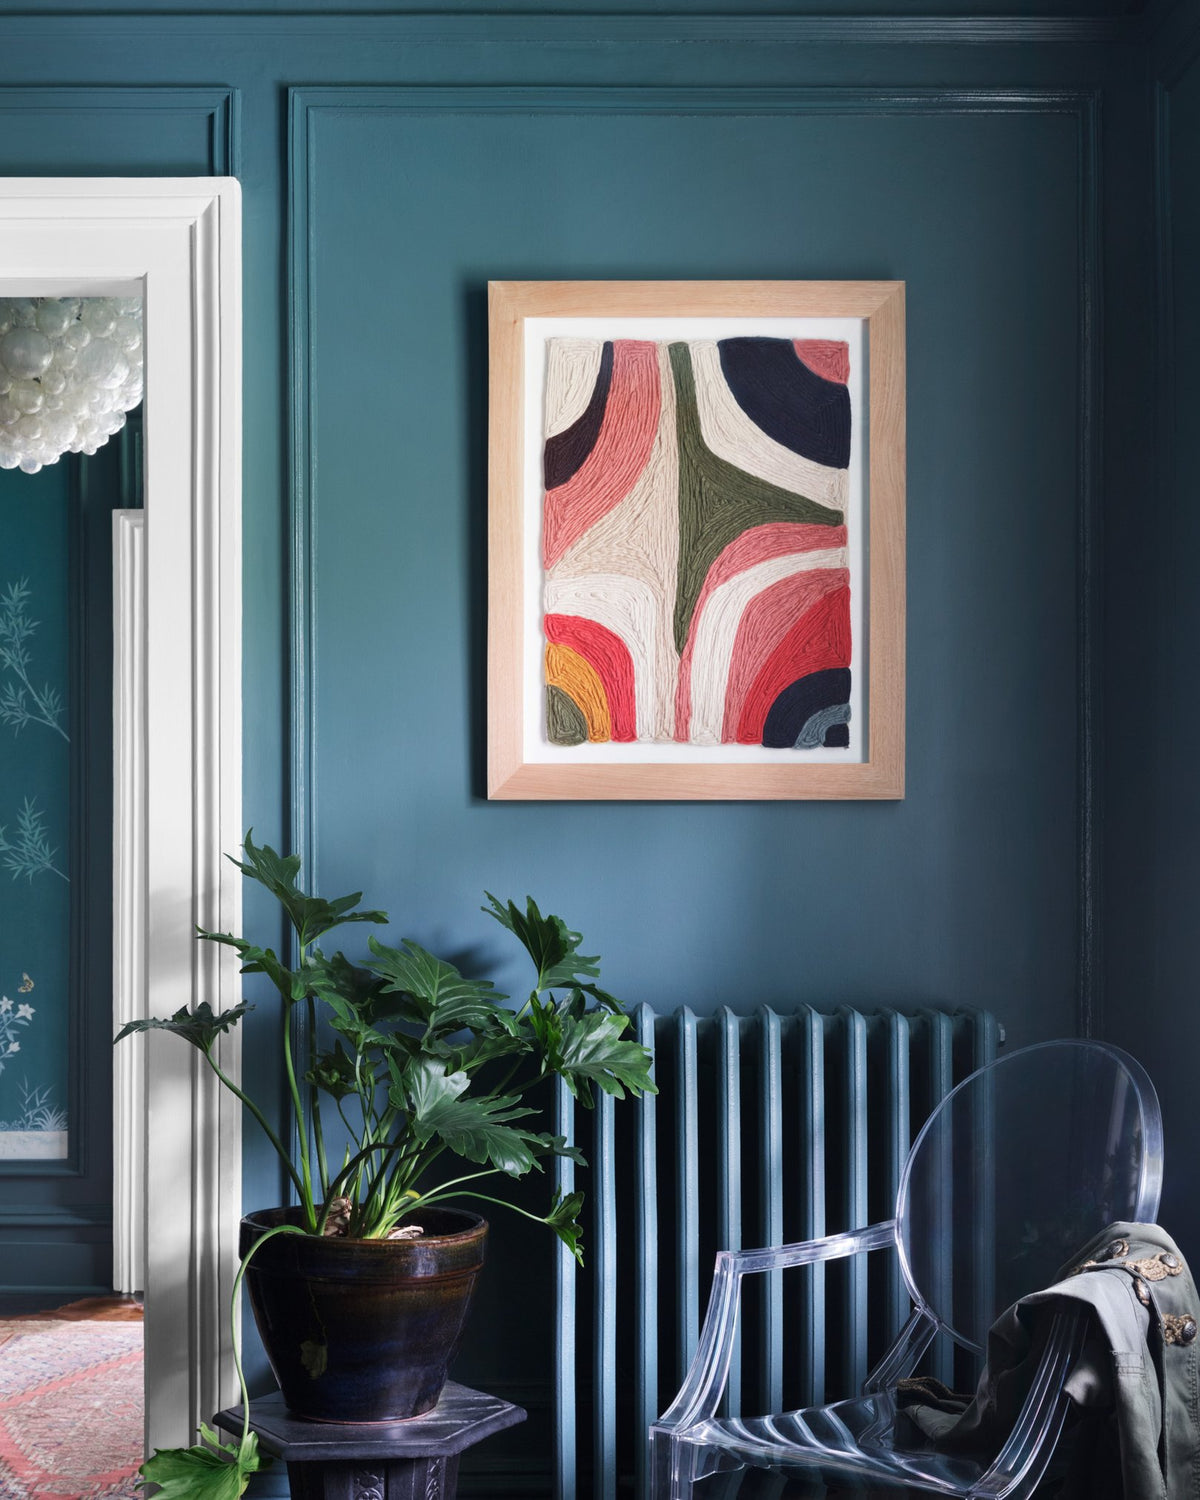 Framed wall art in navy room with plant